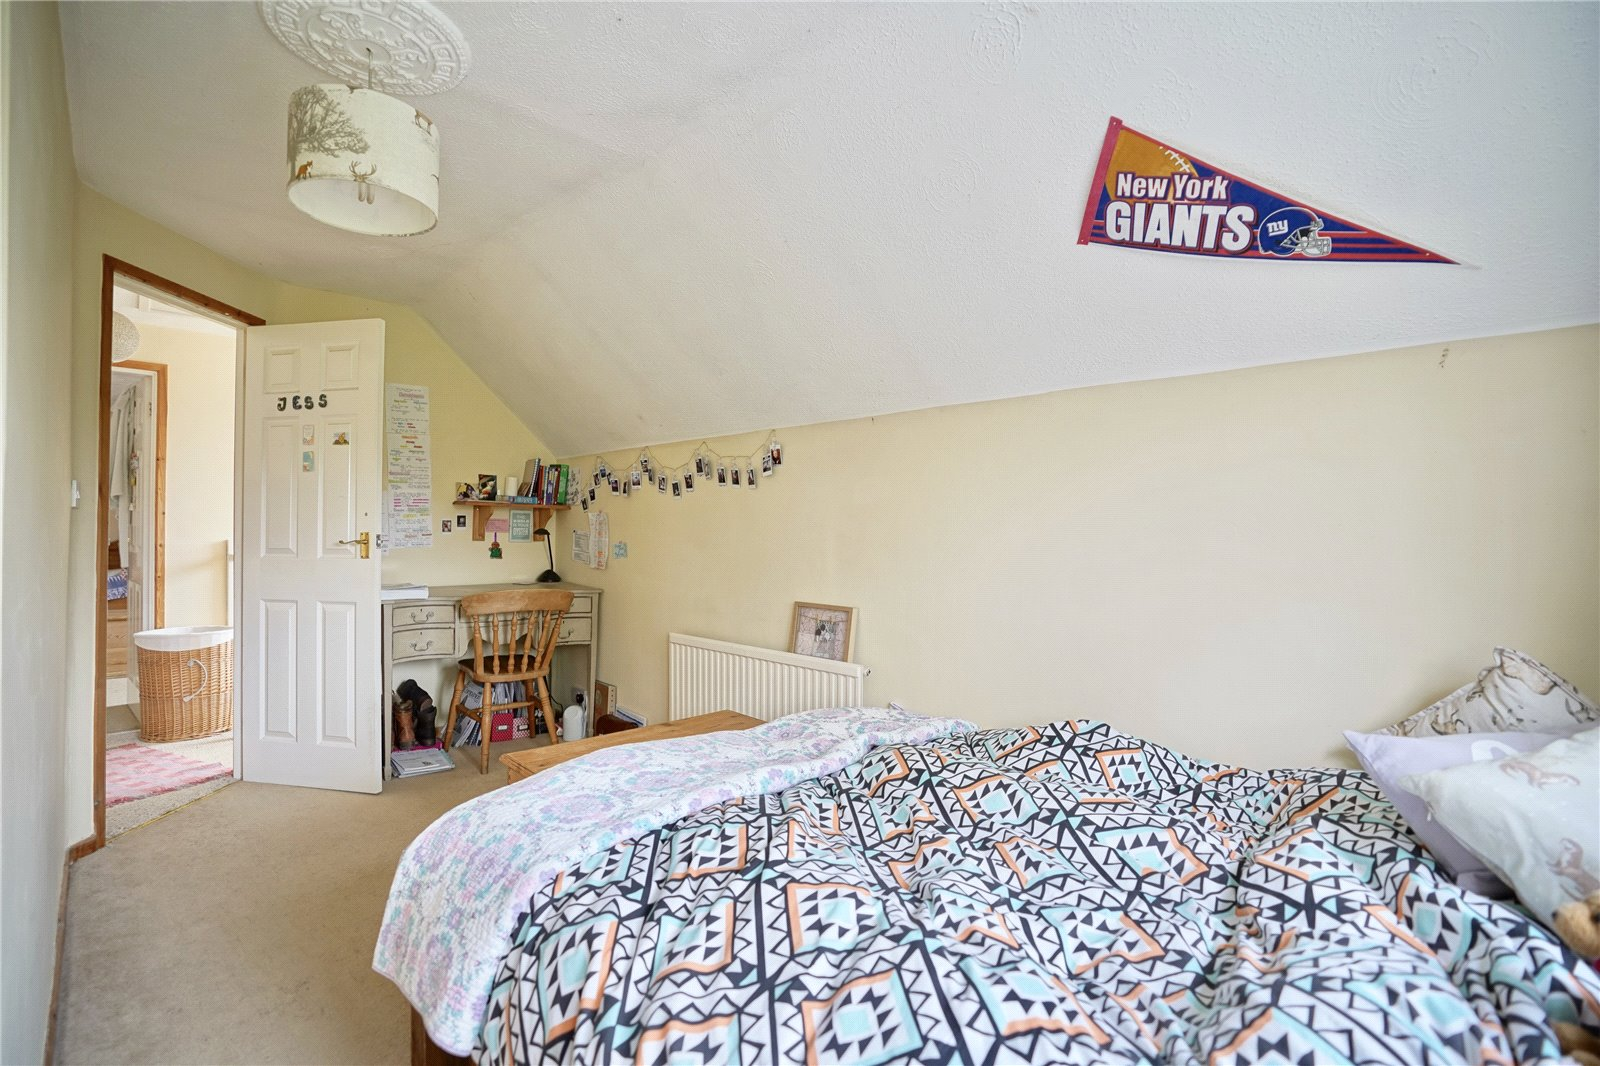 3 bed house for sale in Hemingford Grey, PE28 9BS 10